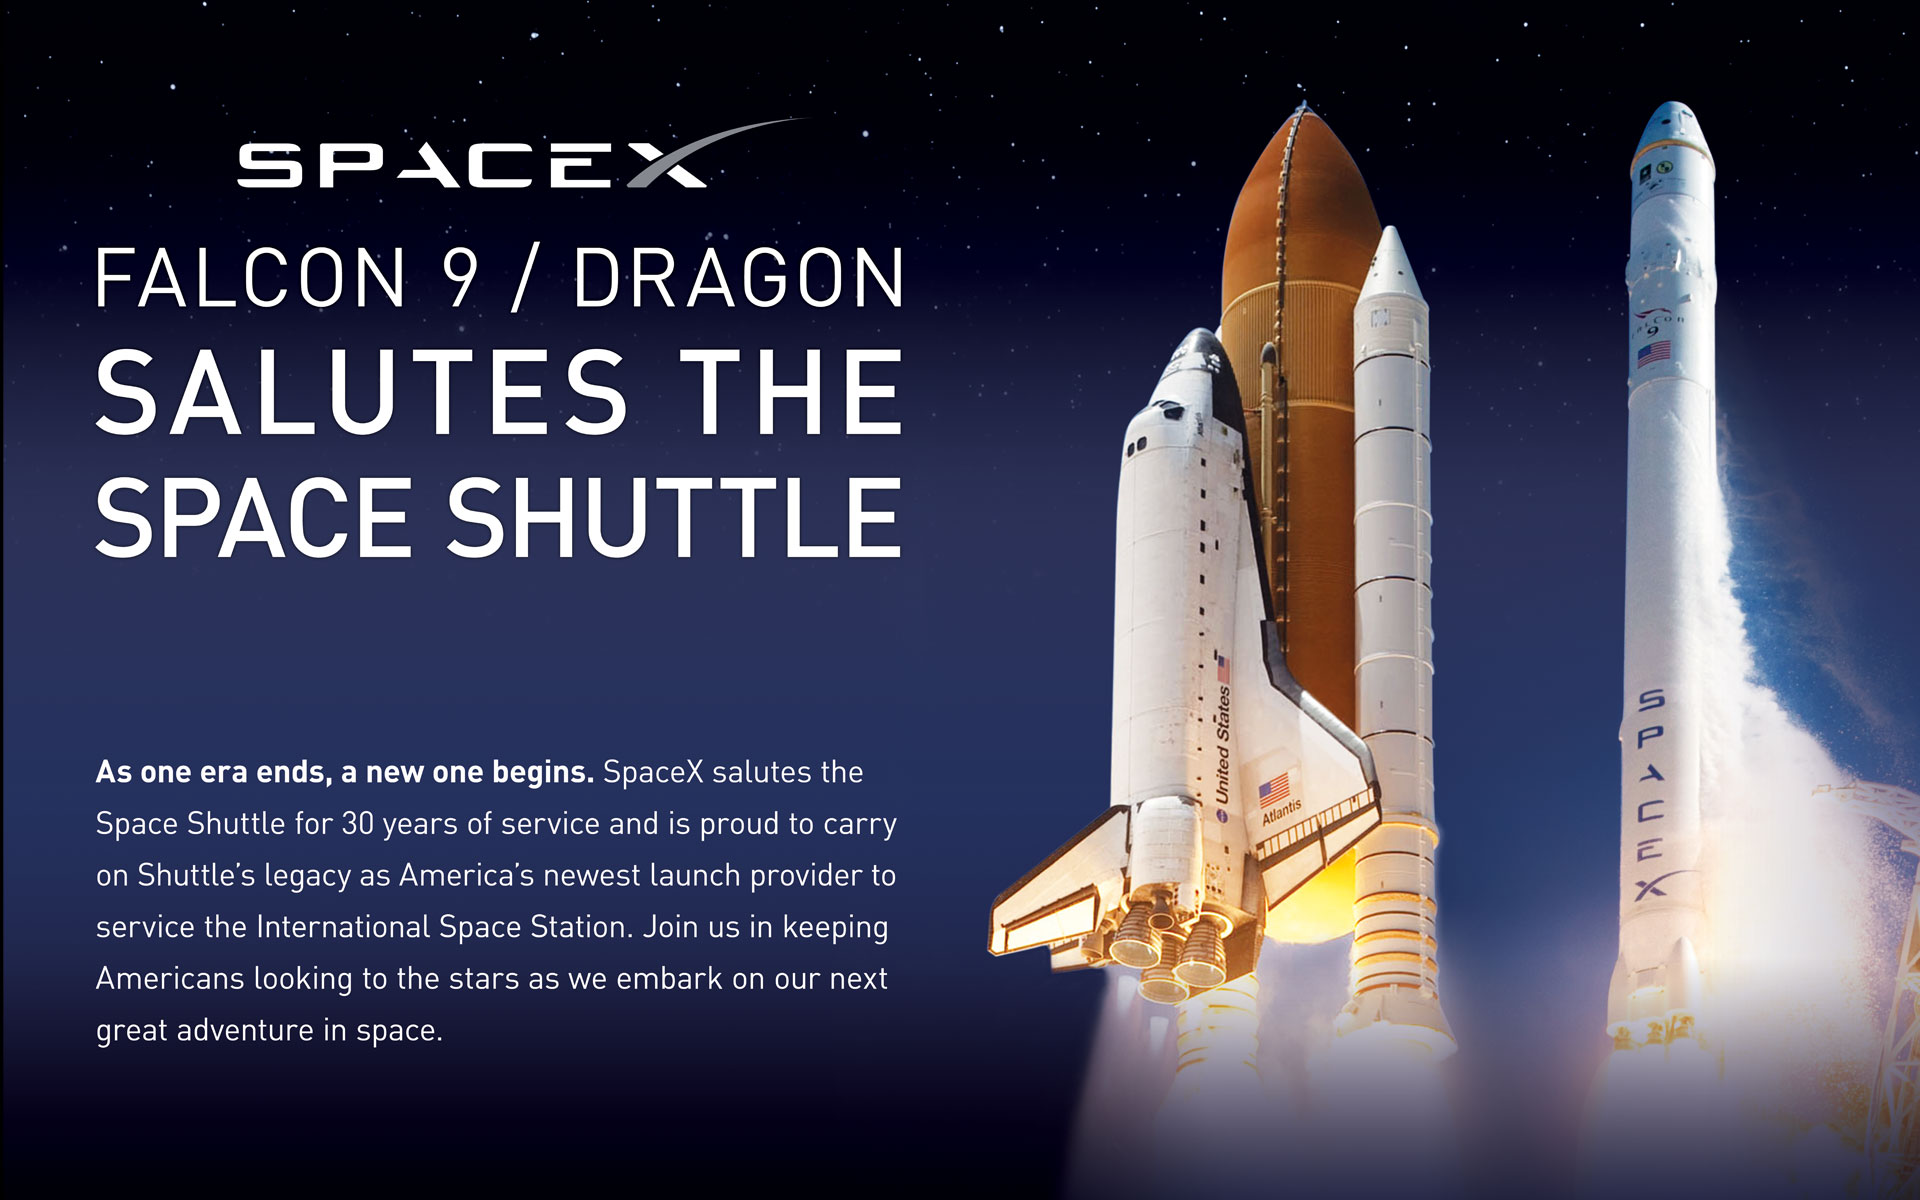 Best 51 SpaceX Dragon Wallpaper on HipWallpaper Awesome Dragon 1920x1200